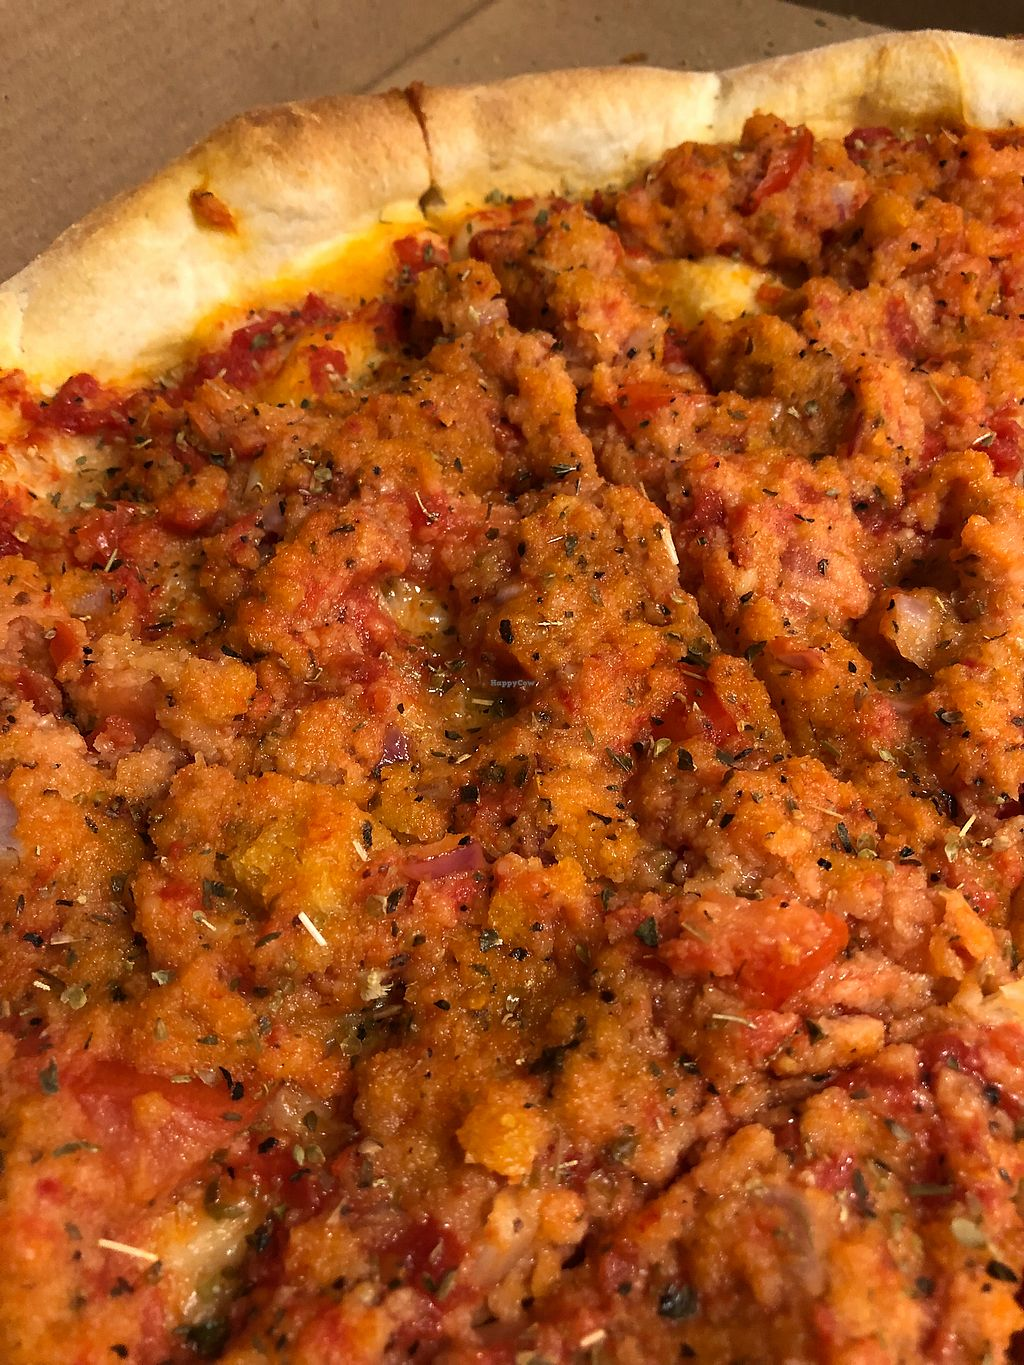 "Photo of Villaggio  by <a href=""/members/profile/Jcaldera"">Jcaldera</a> <br/>Old world pie! Panko, tomatoes and Italian spices! Yum! <br/> February 9, 2018  - <a href='/contact/abuse/image/111681/357009'>Report</a>"